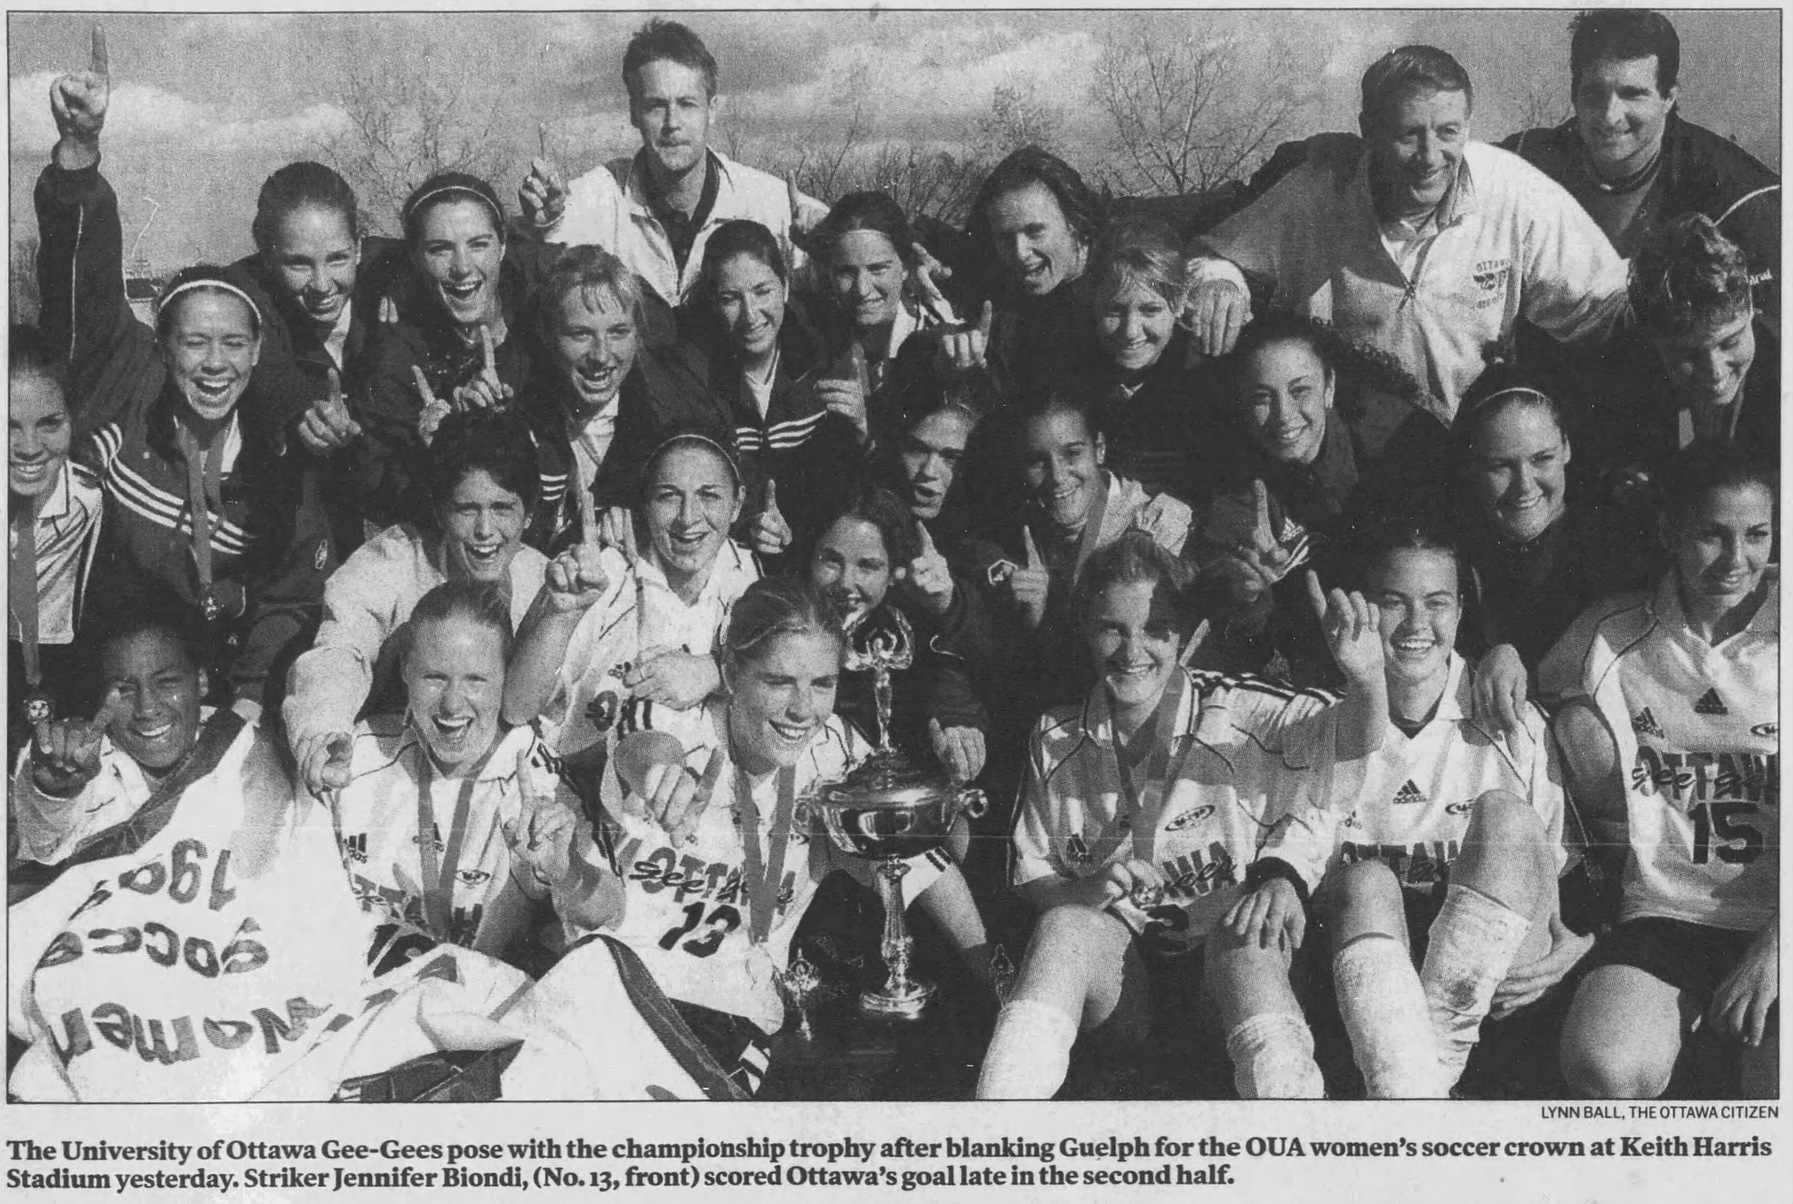 Black and white photo of team celebrating with trophy and banner.